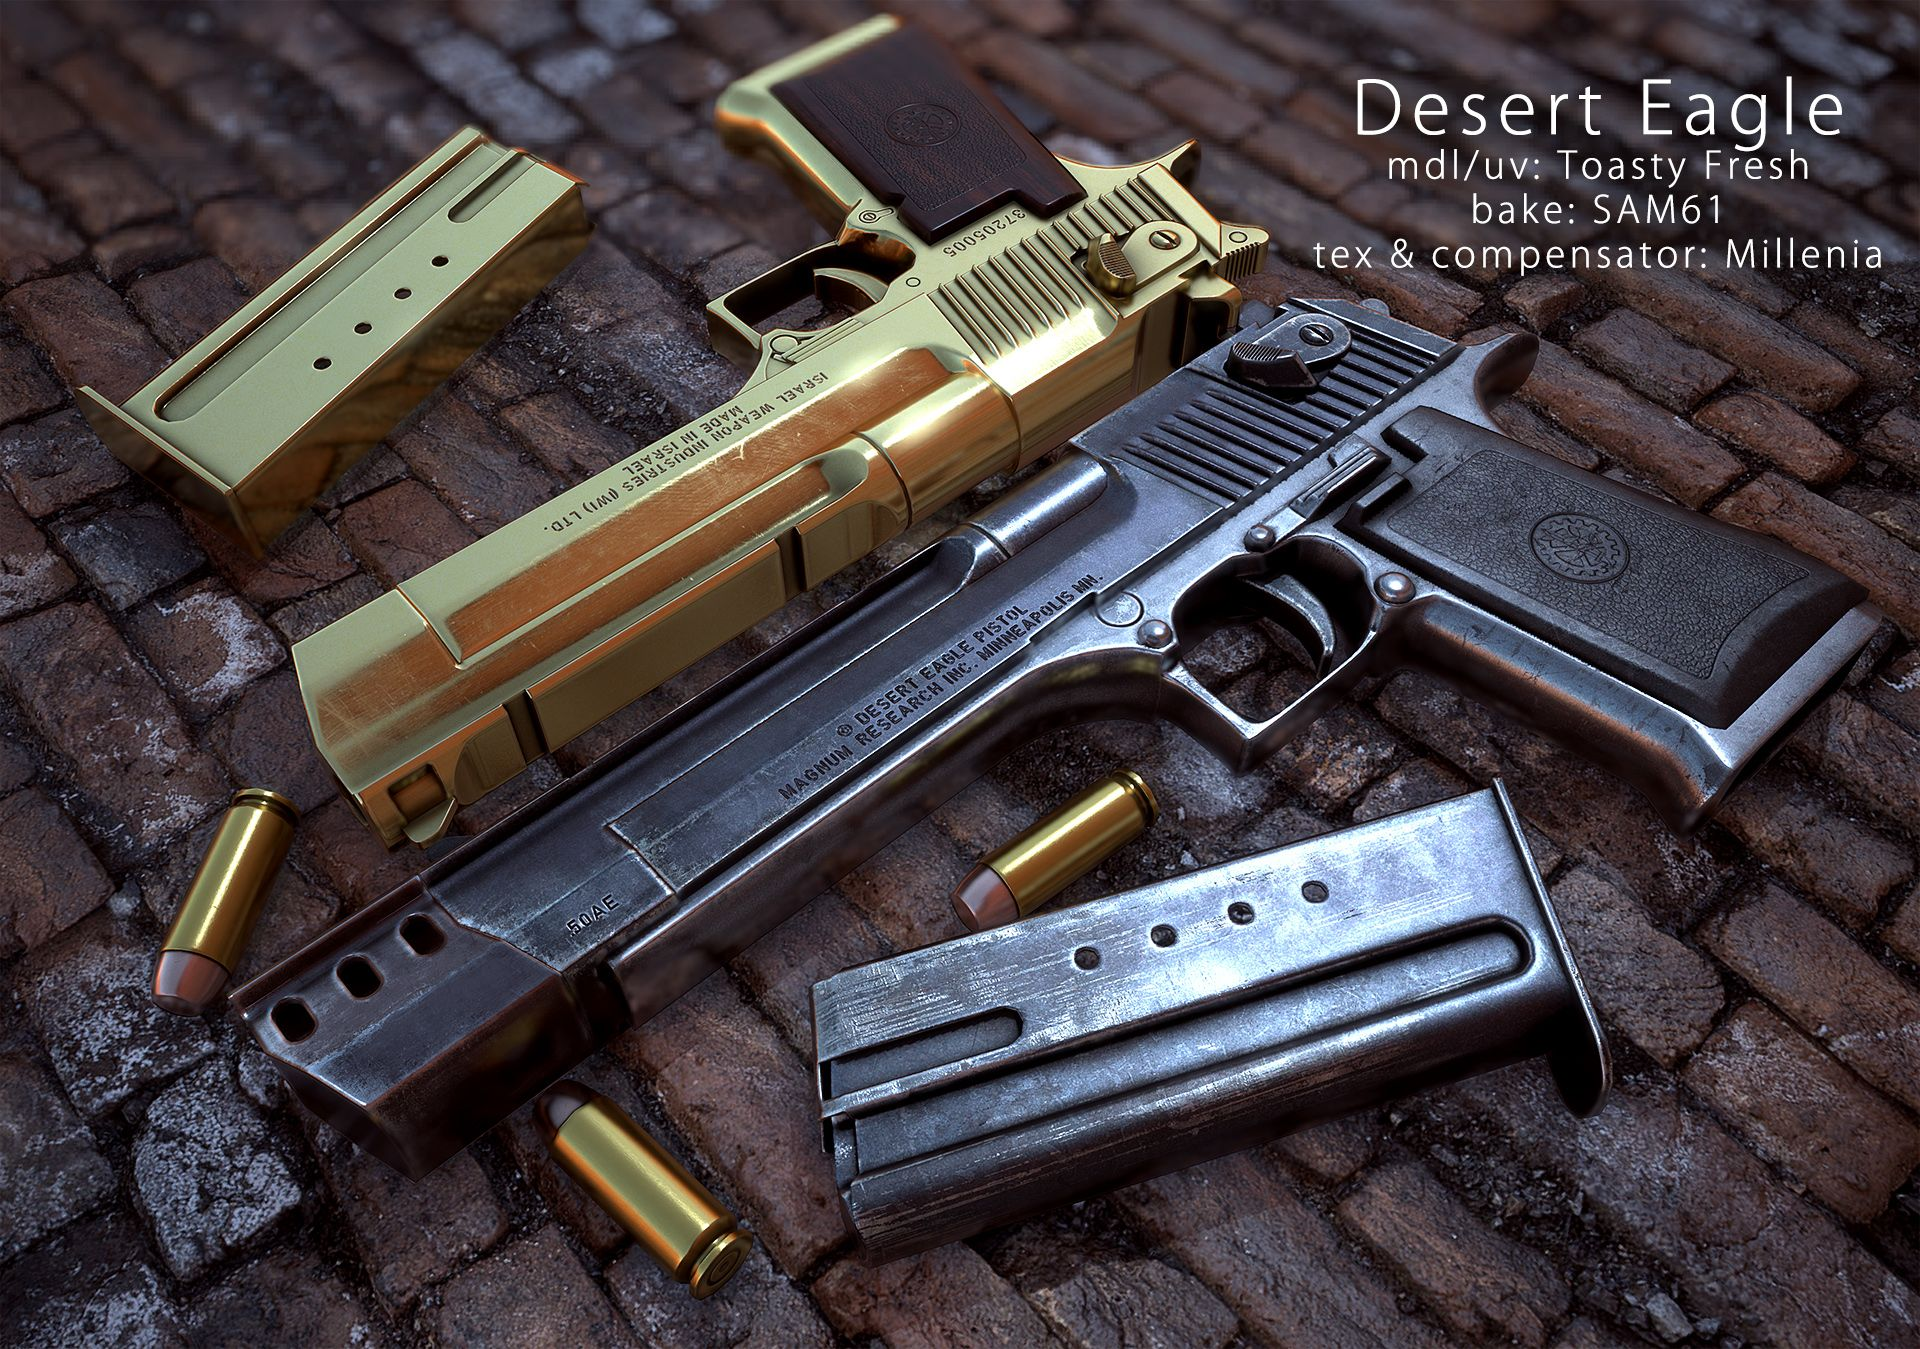 IMI Desert Eagle at Fallout New Vegas mods and community